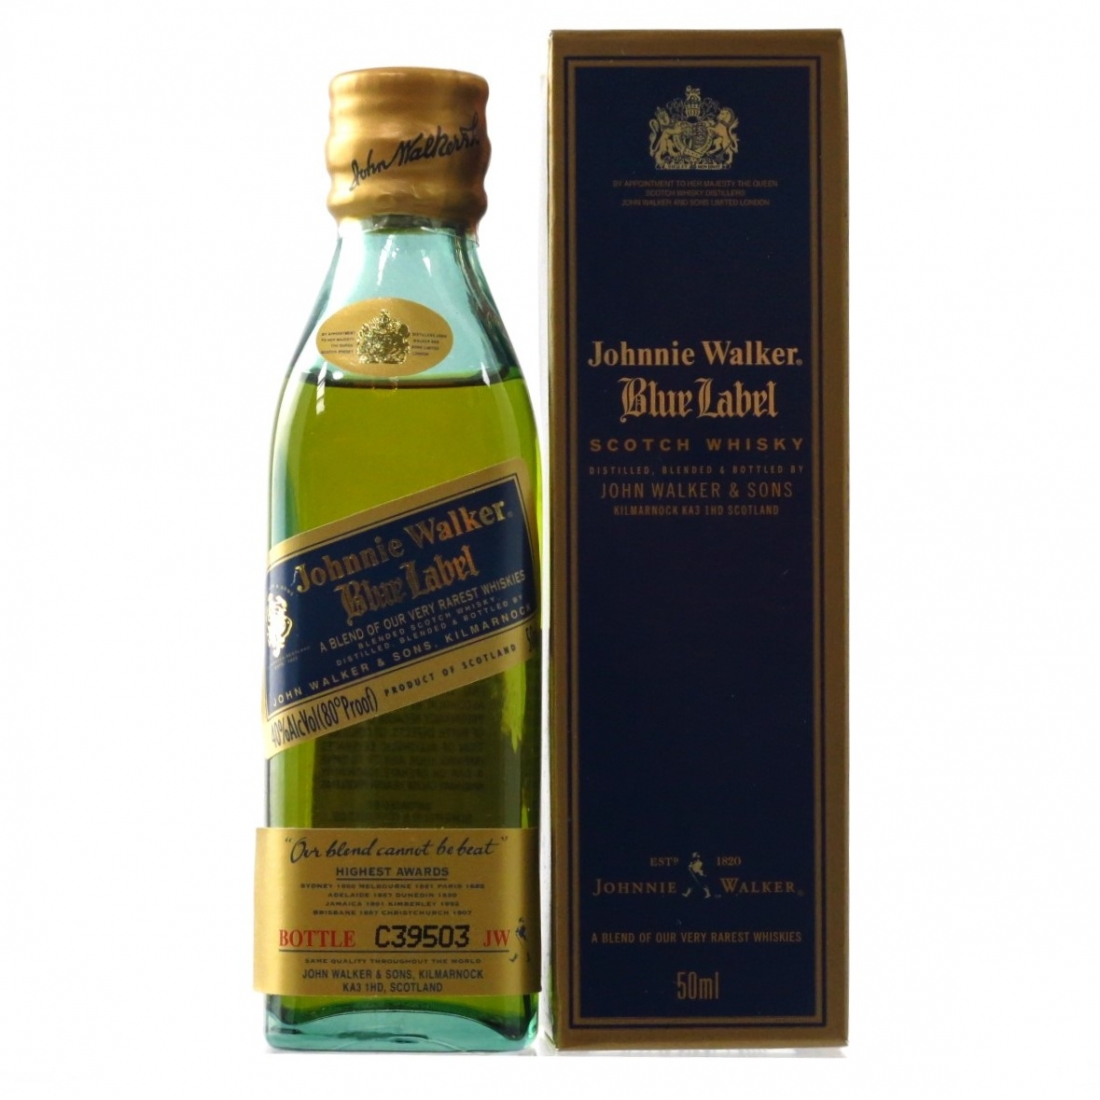 Johnnie Walker Blue Label Miniature 5cl / US Import